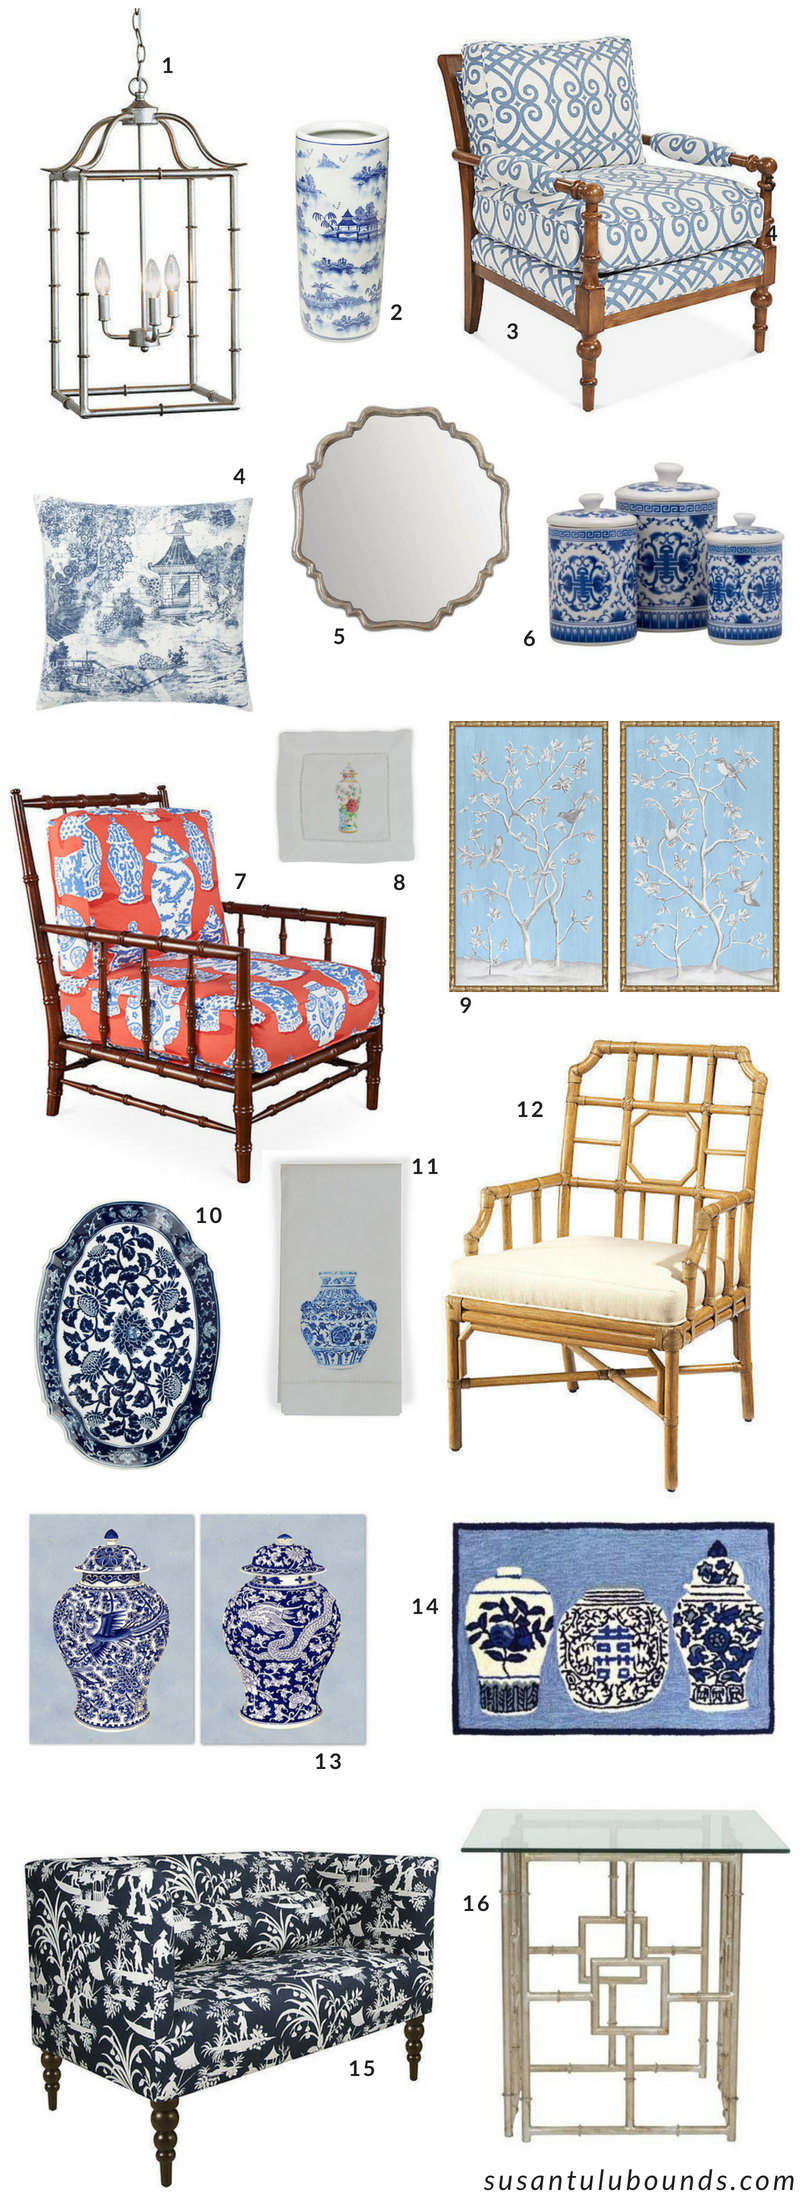 Blue & White Chinoiserie Obsession - Susan Tulu Bounds